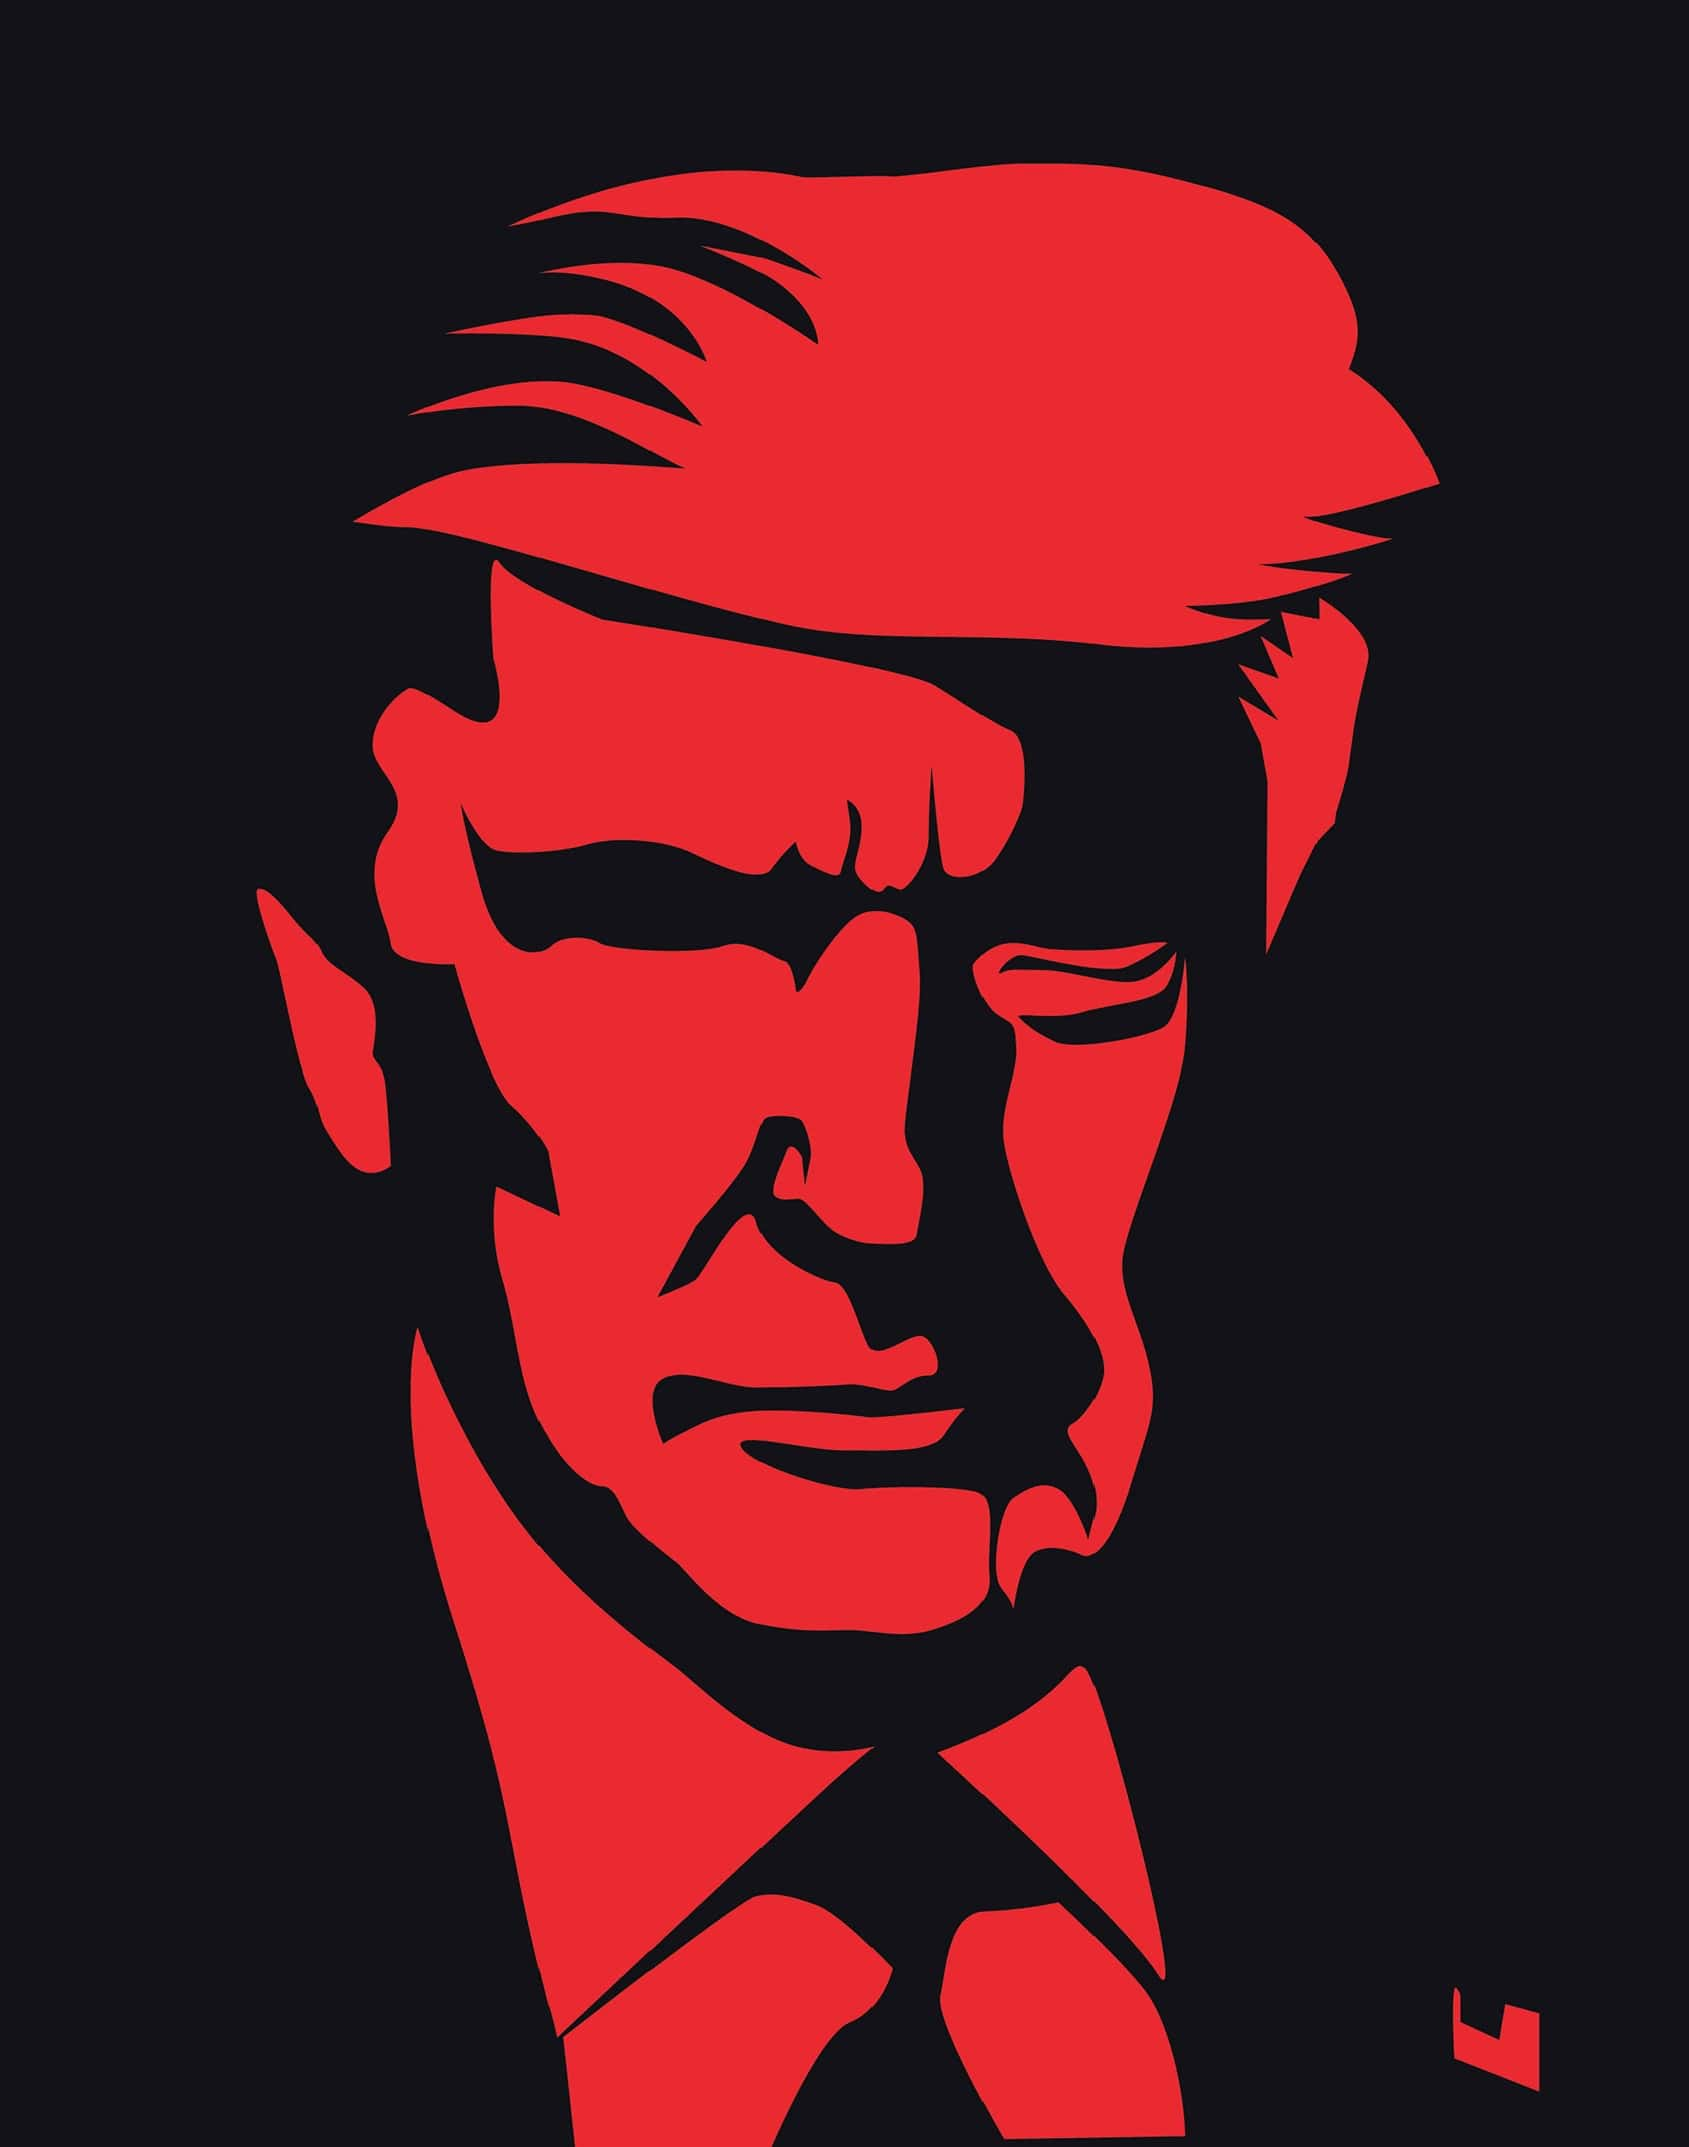 2020 Trump Wallpaper